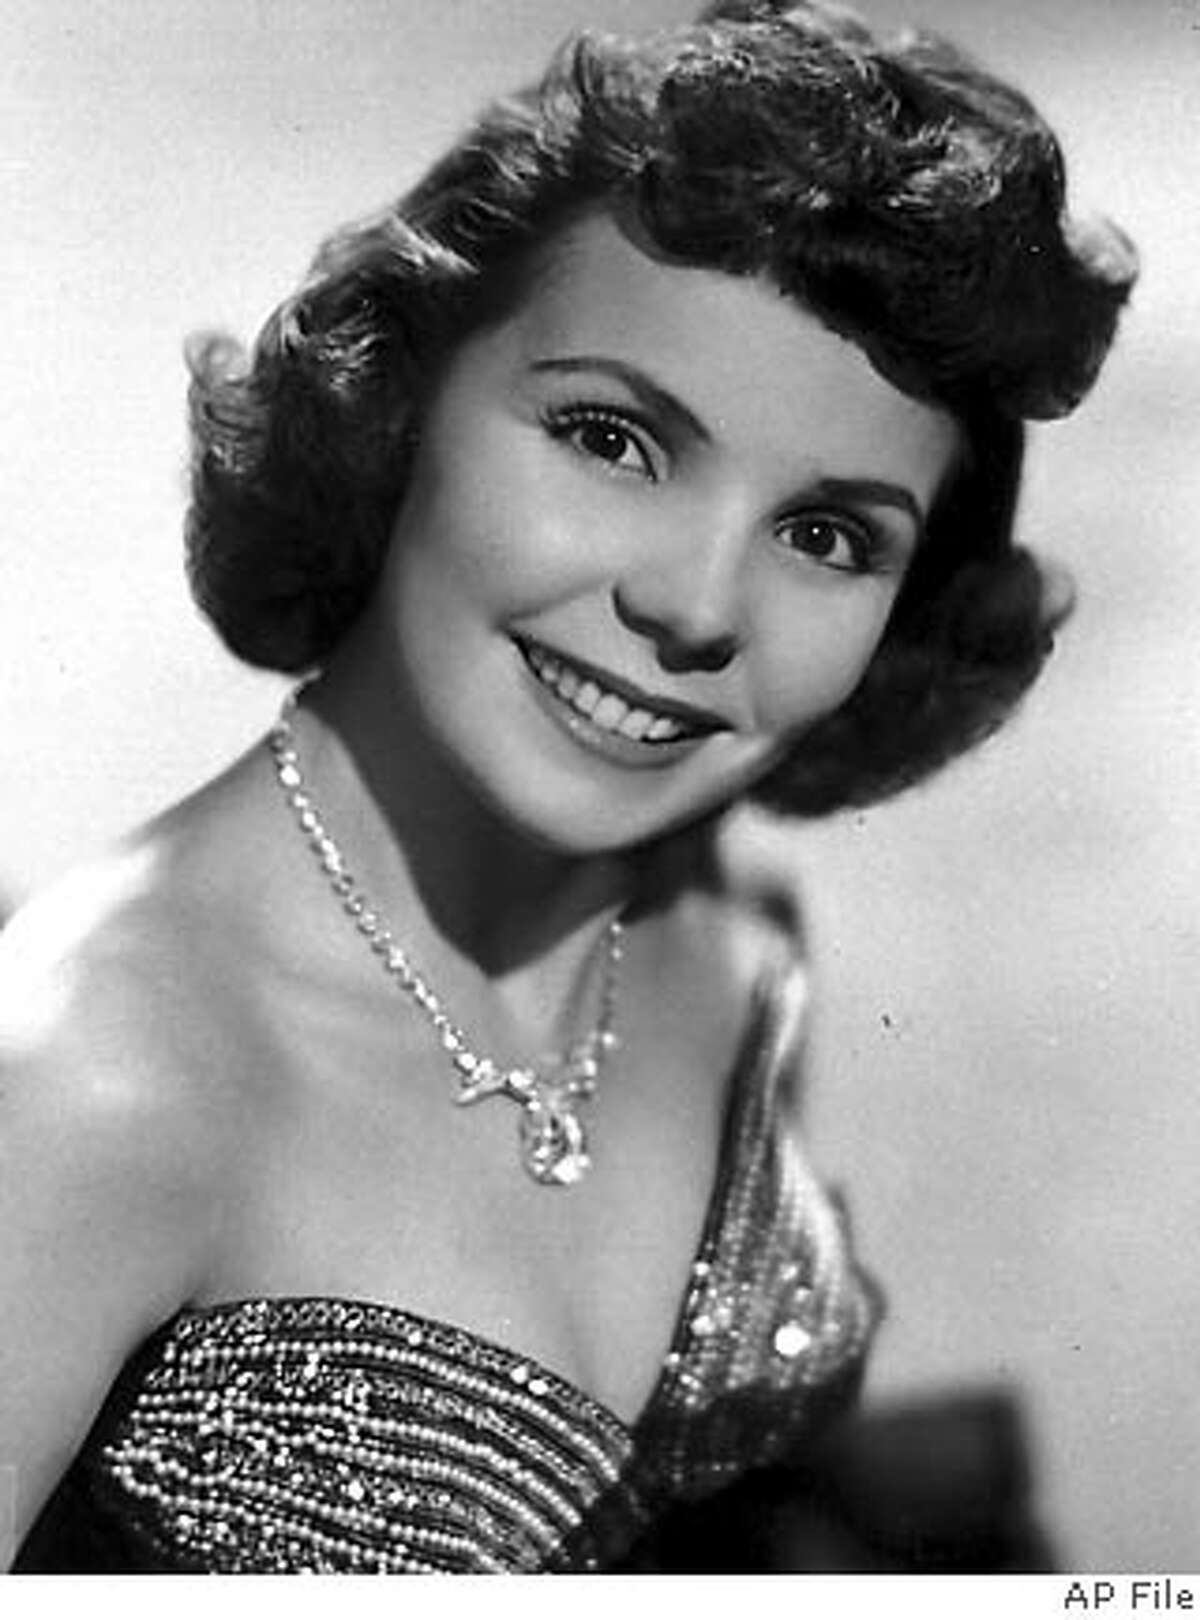 **FILE** This file photo from 1956 shows singer Teresa Brewer.Brewer, who topped the charts in the 1950s with hits like